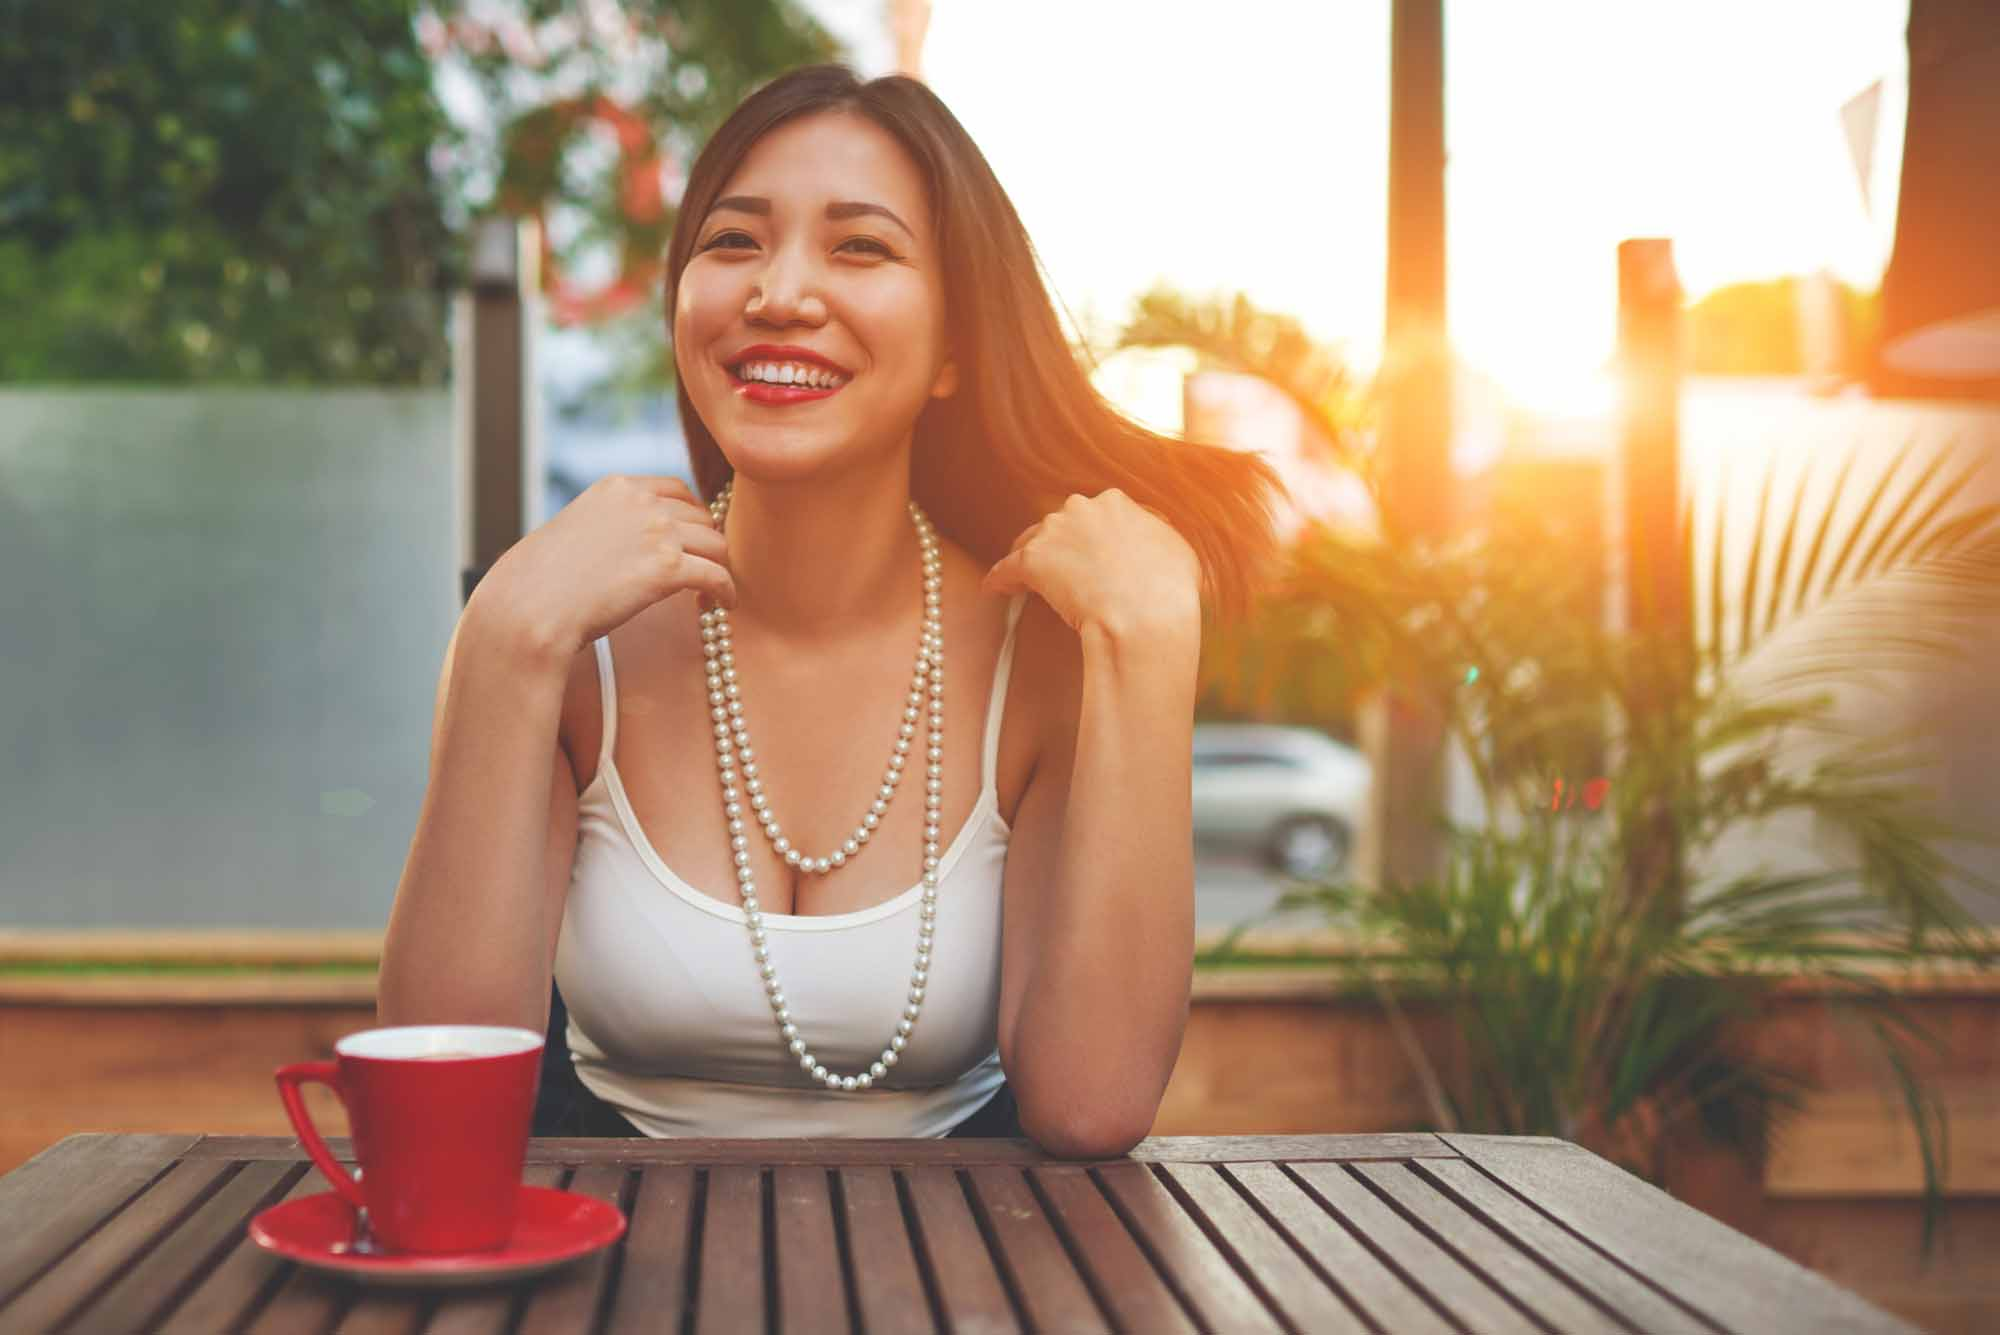 destress techniques girl smiling at table during sunset